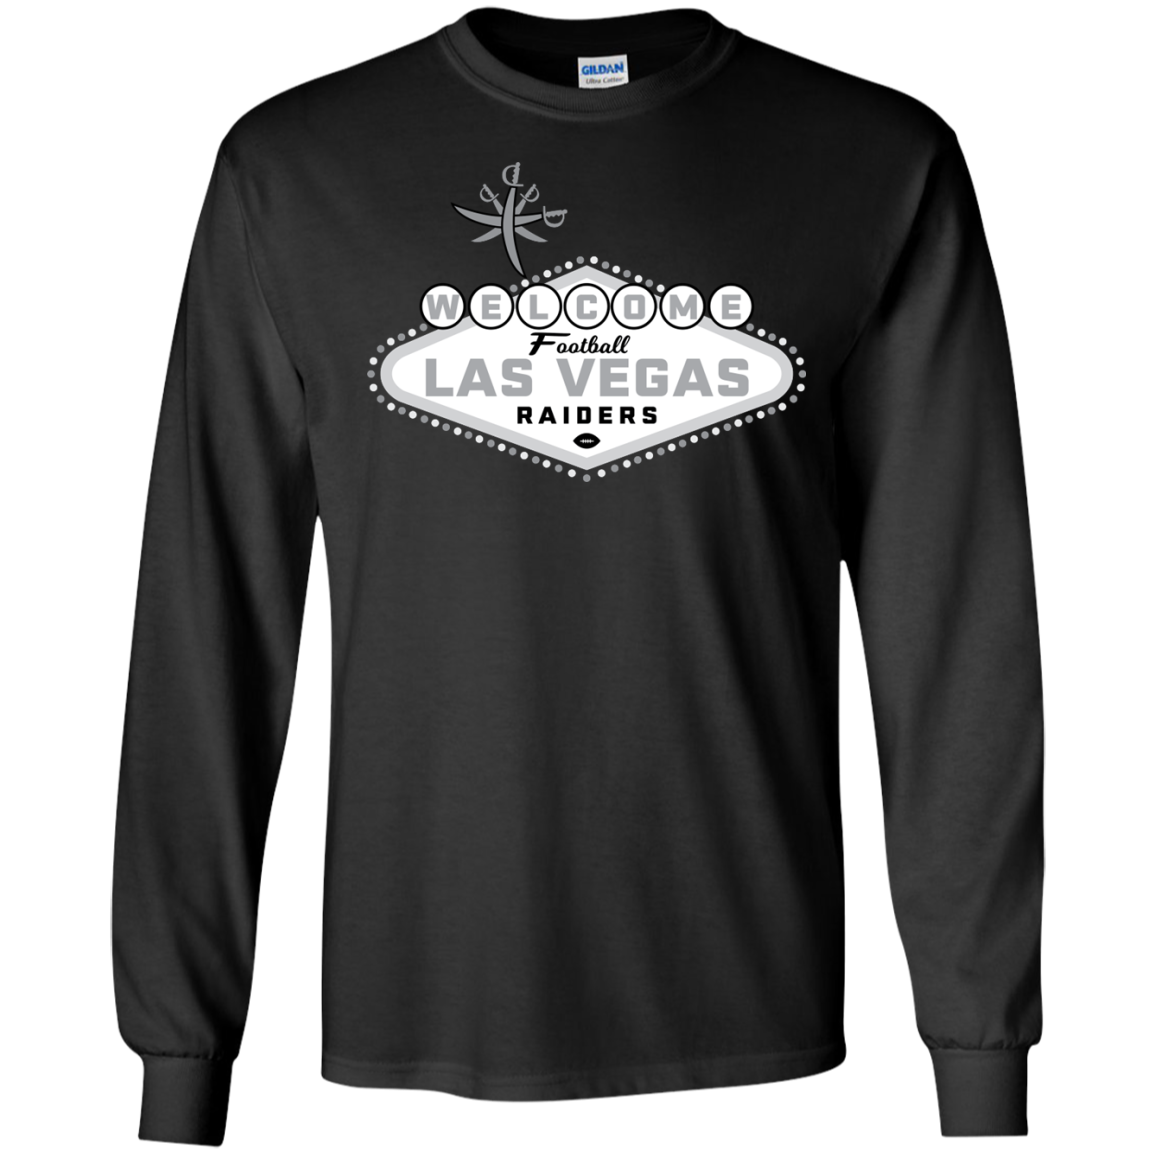 Las Vegas Raiders T-Shirt Long Sleeve 240